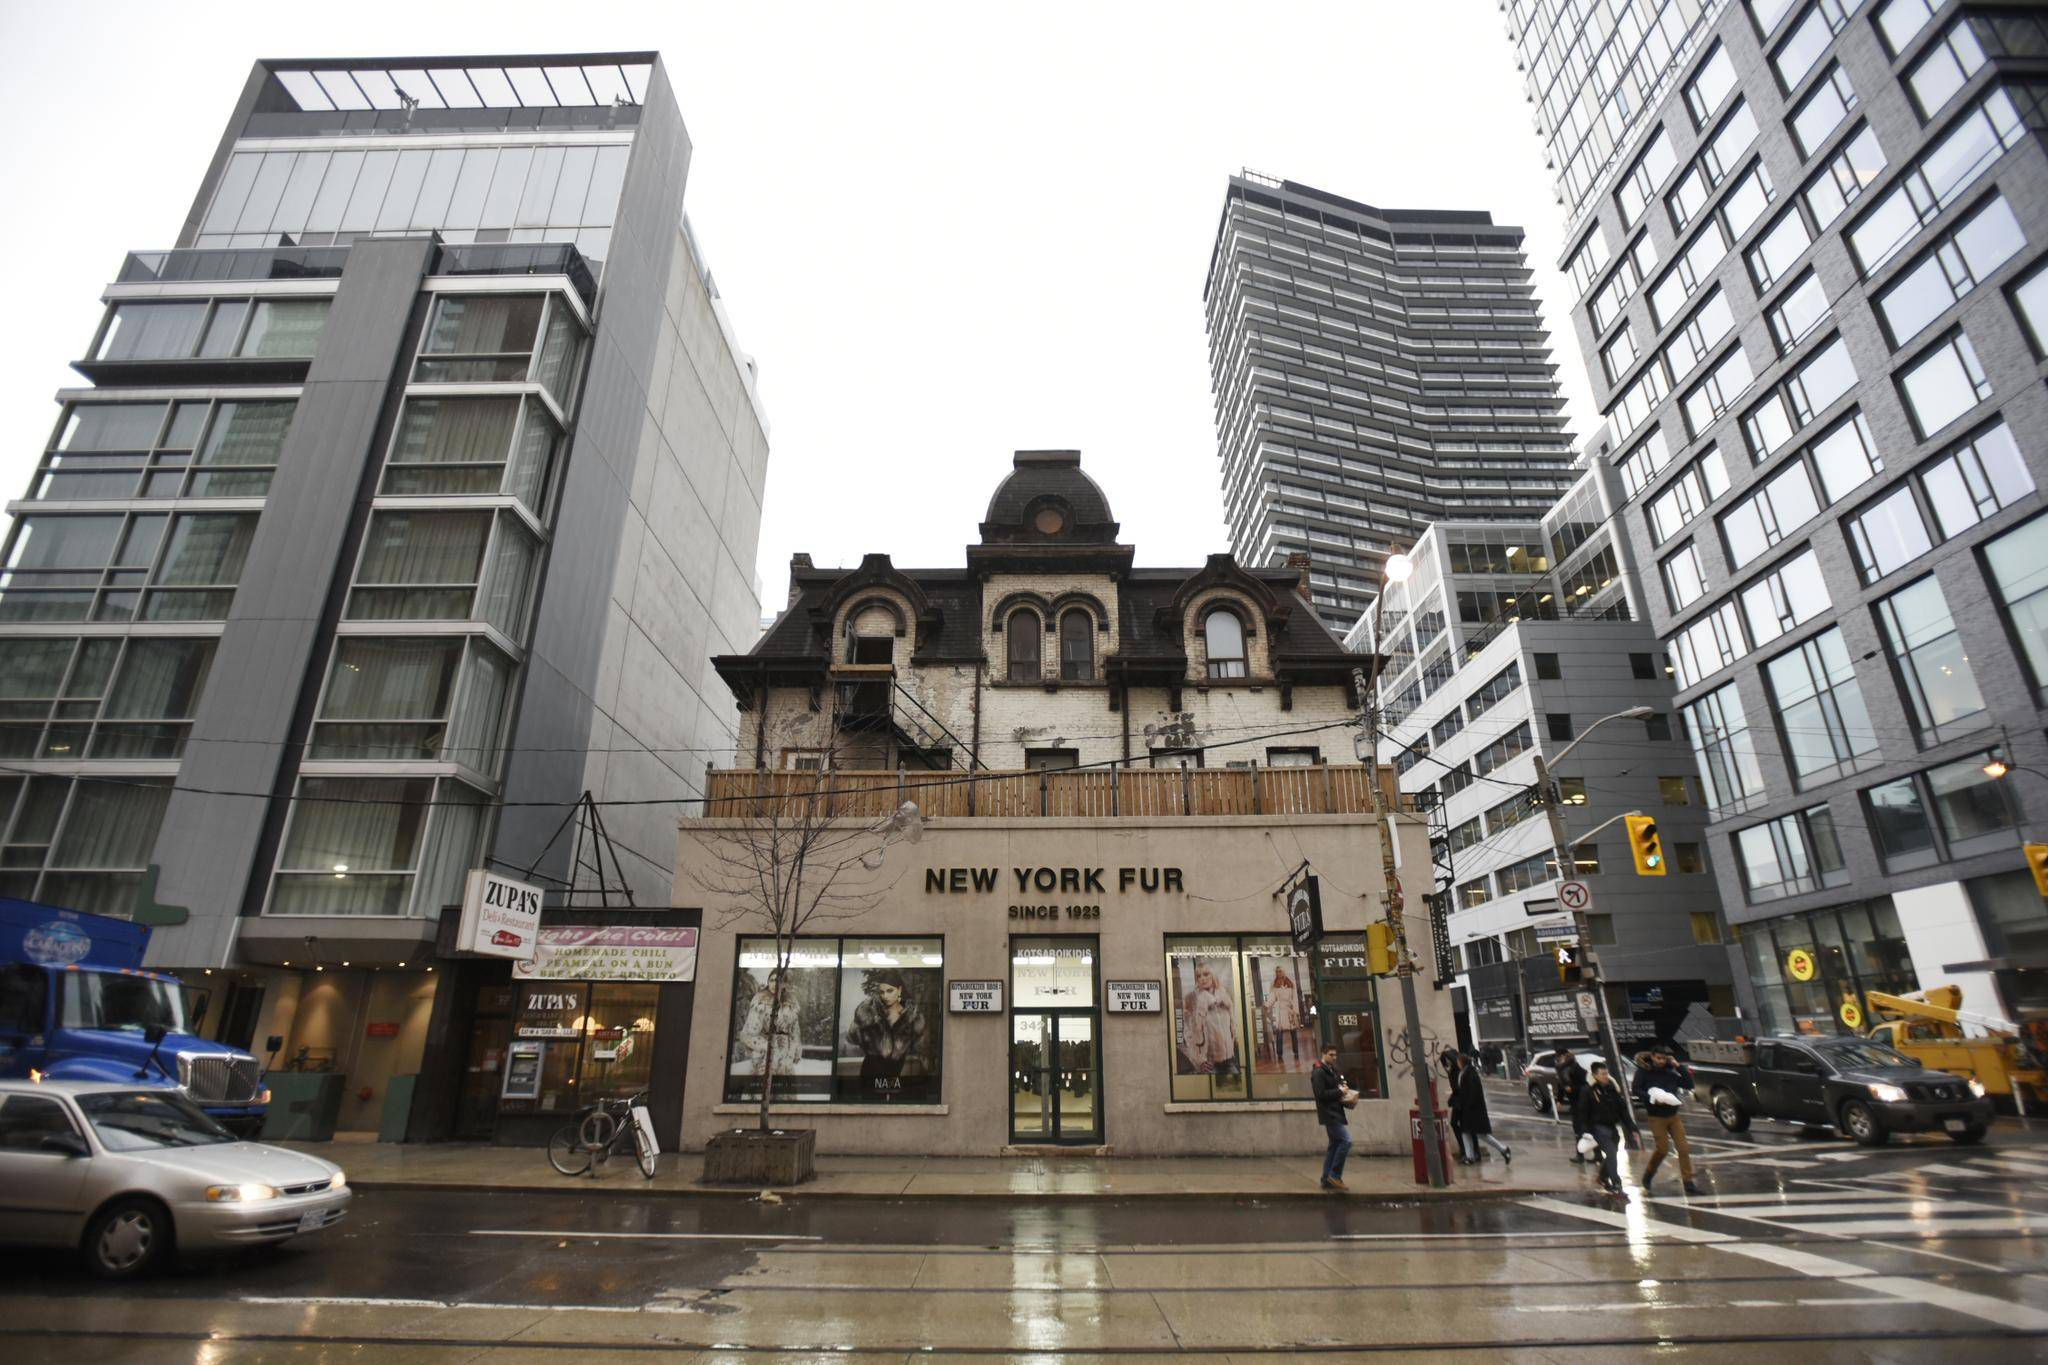 As Toronto S Fashion District Changes Small Businesses Are Feeling